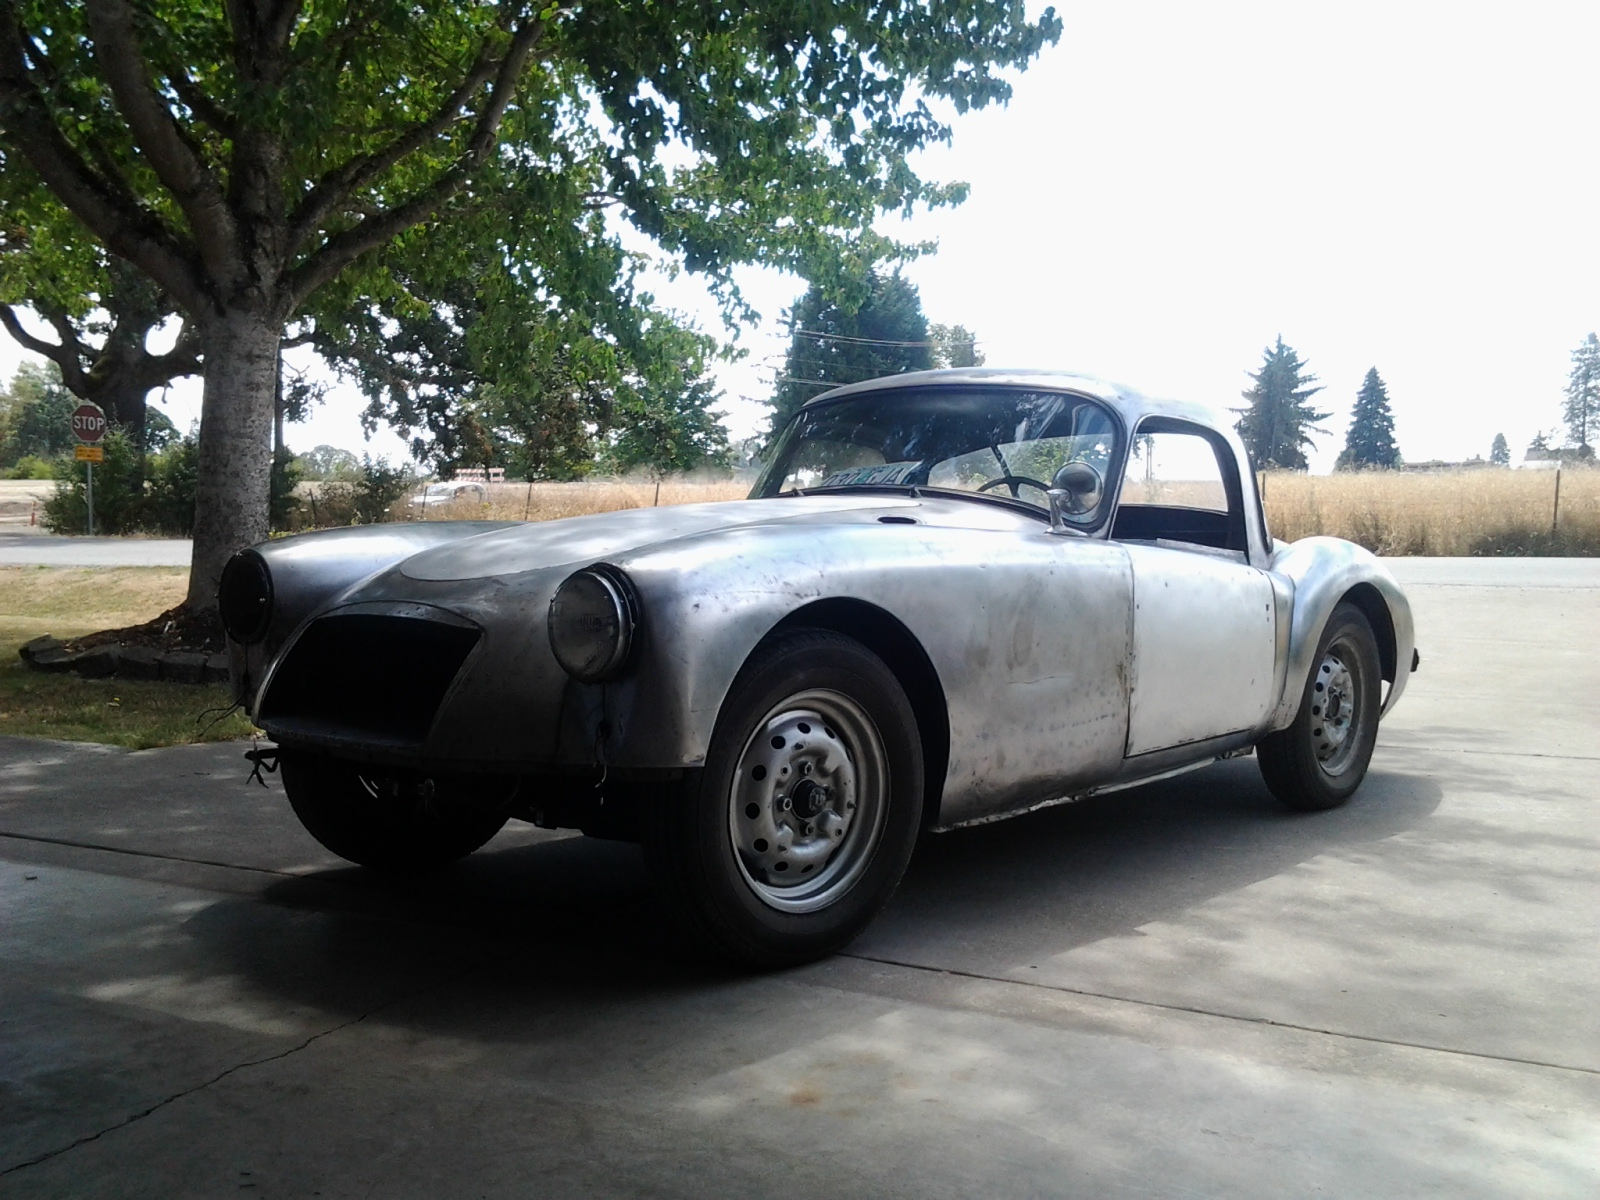 1958 MGA Restoration - Chronicles of a Budget Classic Car Restoration